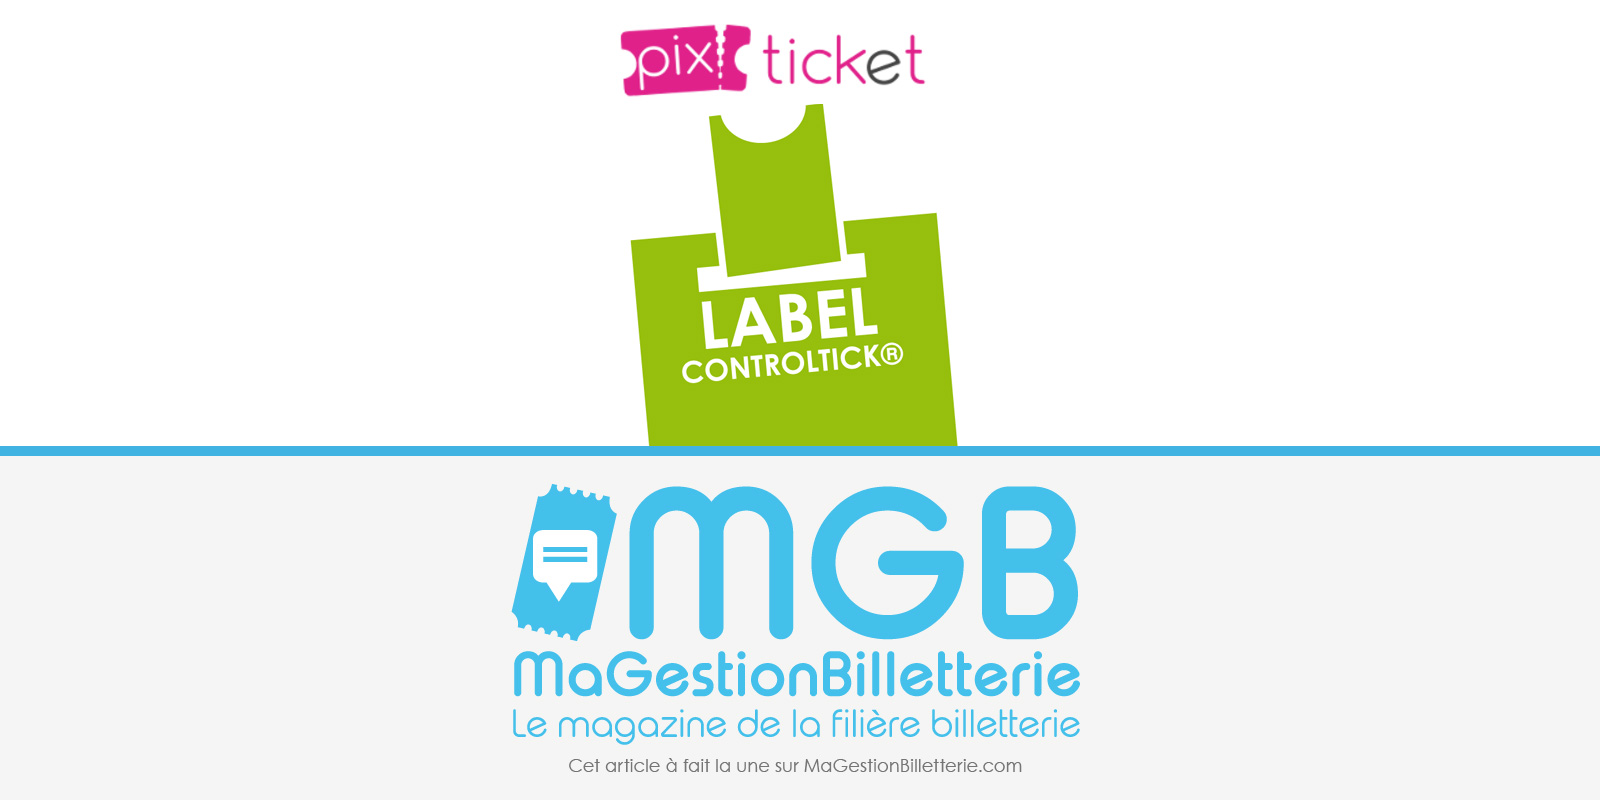 label-controltick-pixticket-une5